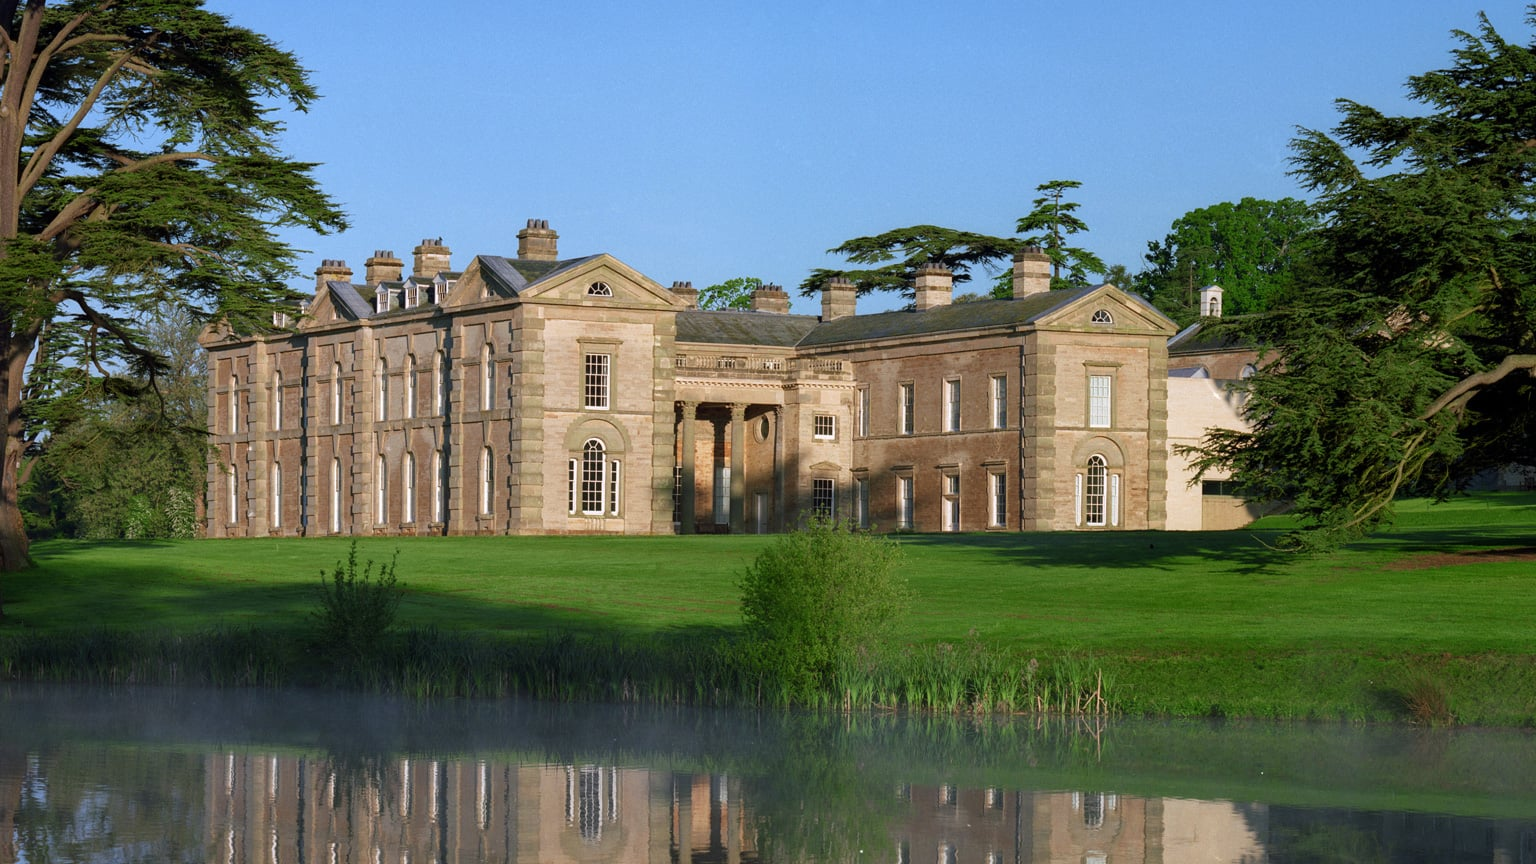 View of Compton Verney